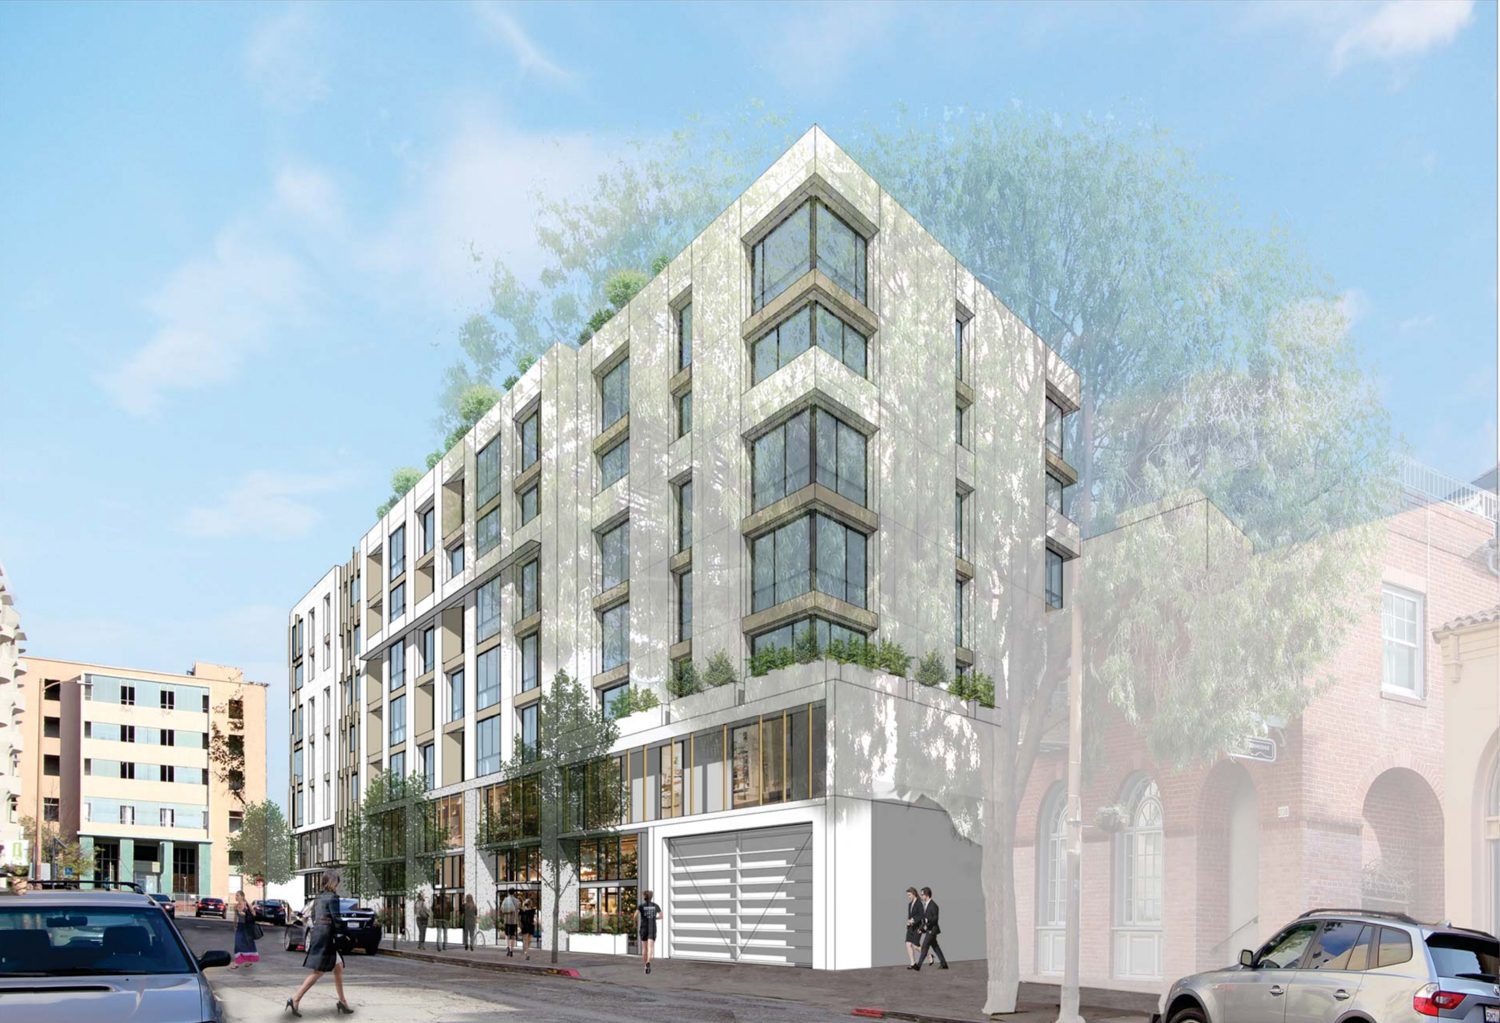 2176 and 2150 Kittredge Street side street perspective, rendering design by Kava Massih Architects